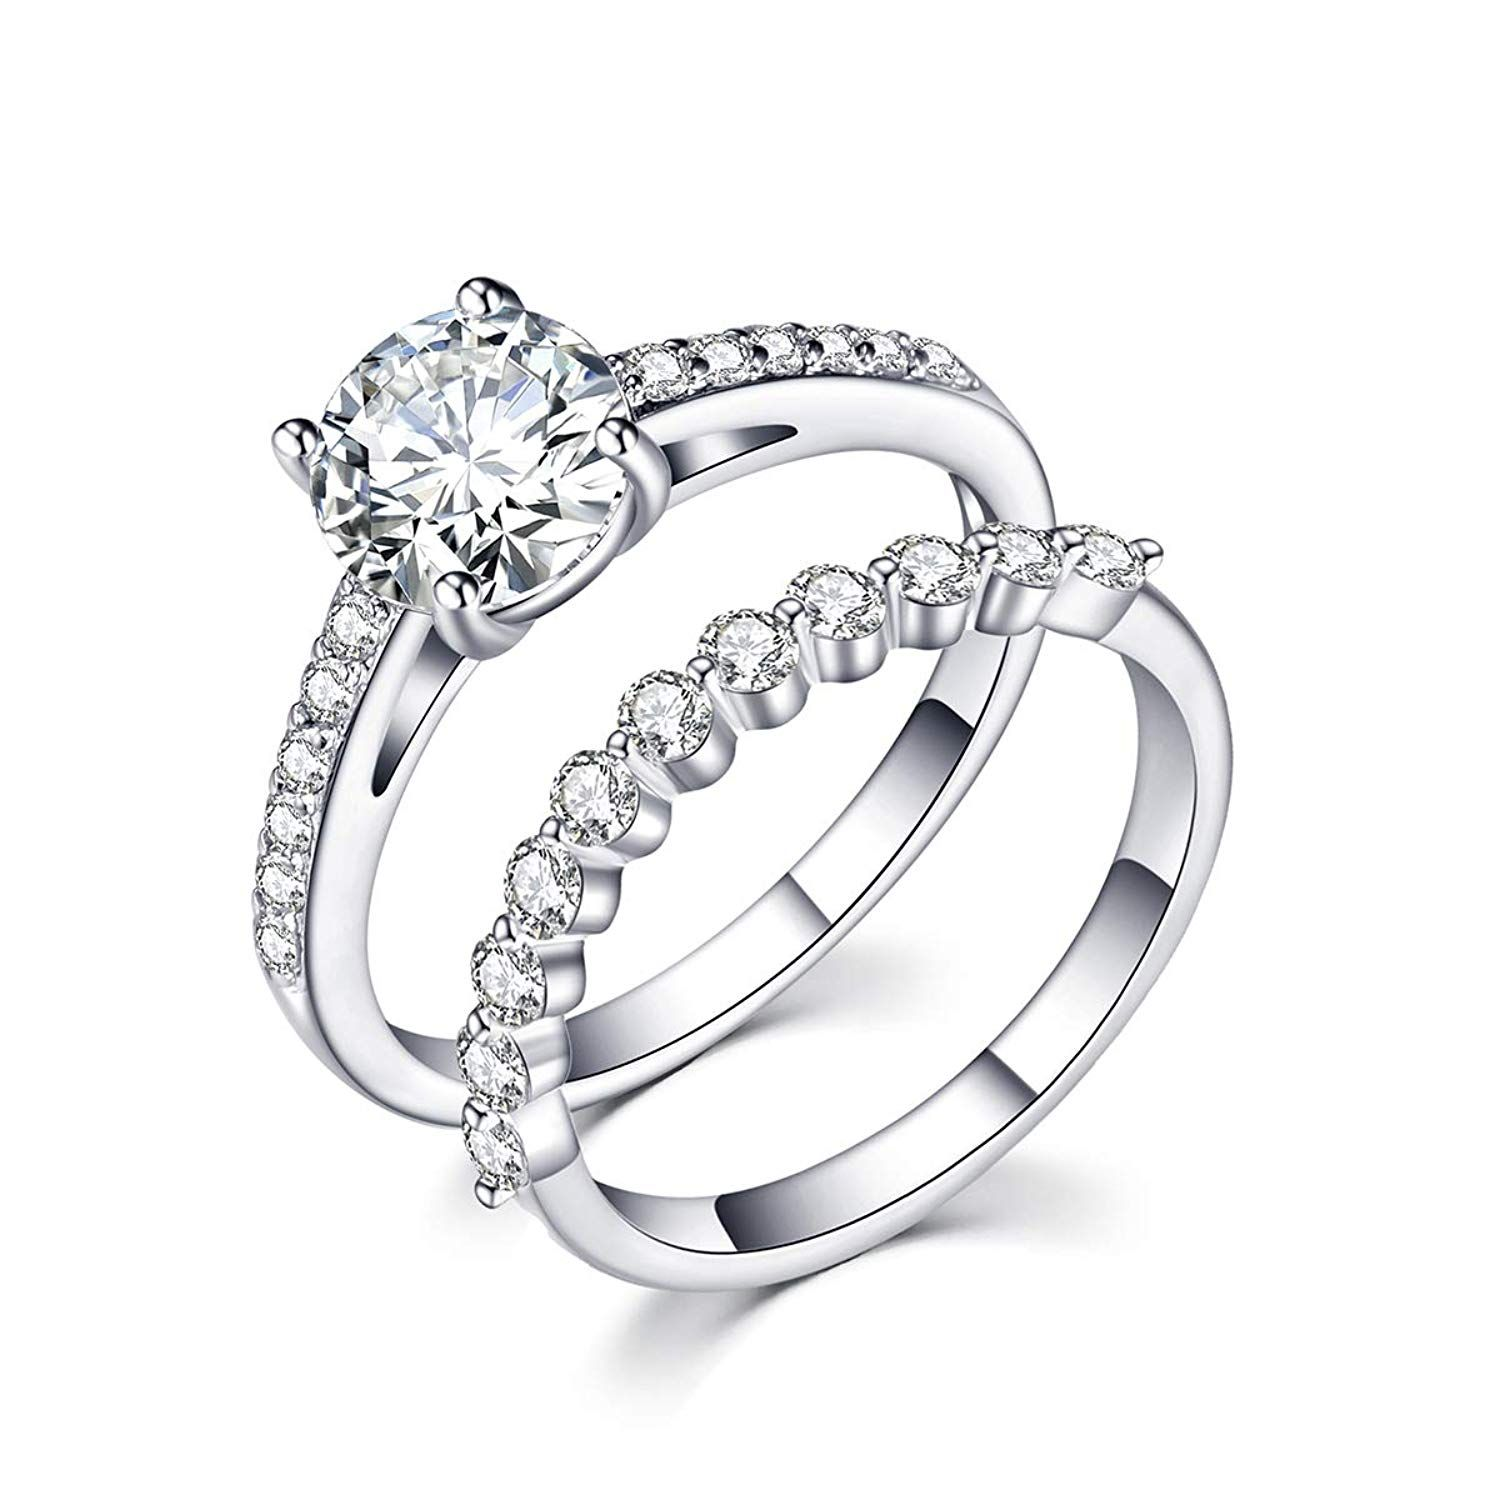 Rongji Jewelry Cz Engagement Rings Gem Grade Cubic Zirconia Platinum Plated Stacking Ring For W Cz Rings Engagement Wedding Ring Bands Sparkling Diamond Ring